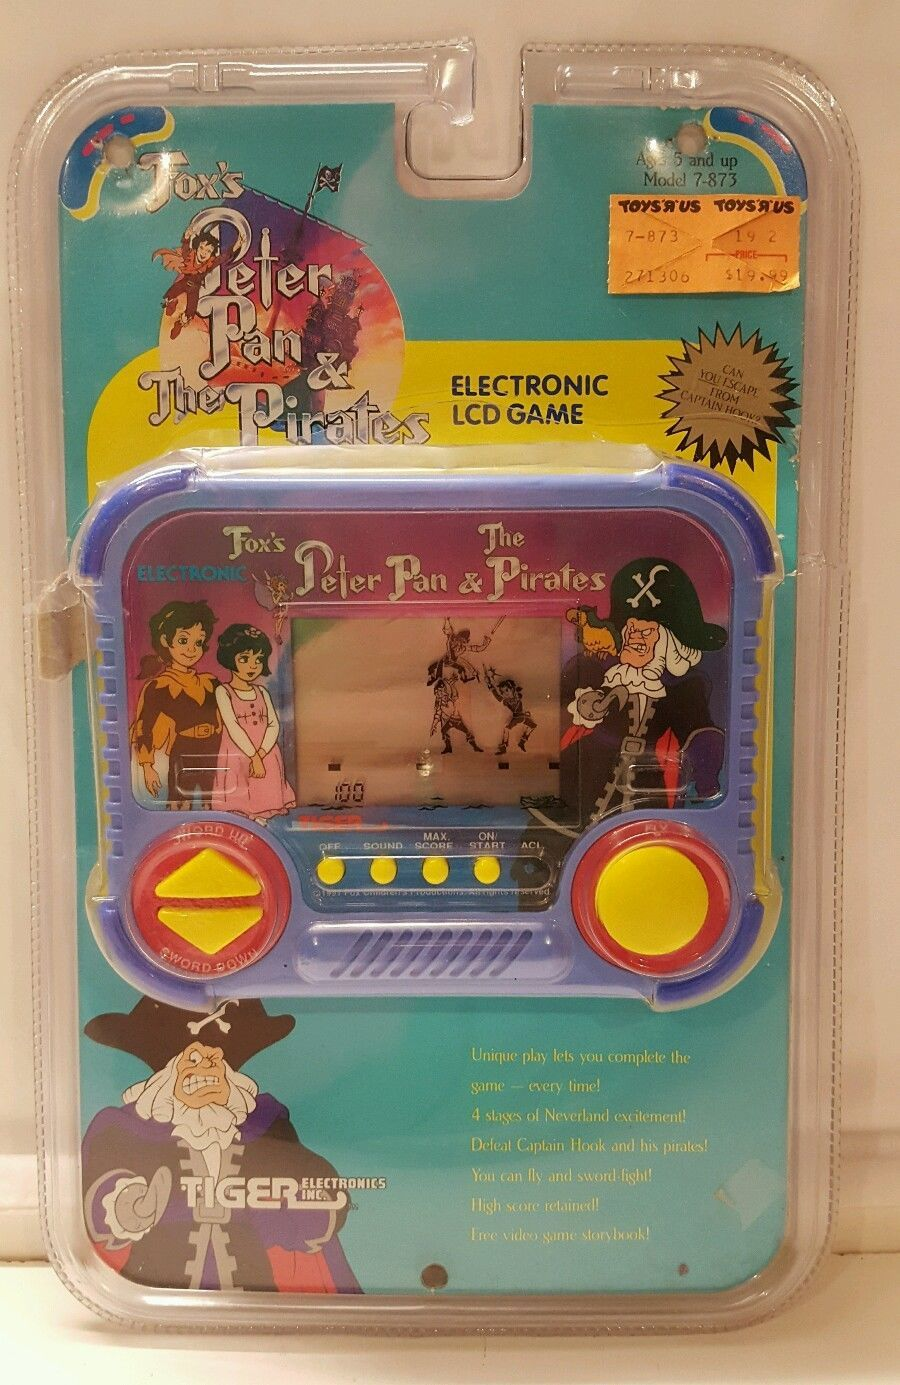 Cavalier round led illuminated bathroom mirror battery powered ebay - Vtg 1991 Peter Pan The Pirates In Package Tiger Electronics Handheld Lcd Game Ebay